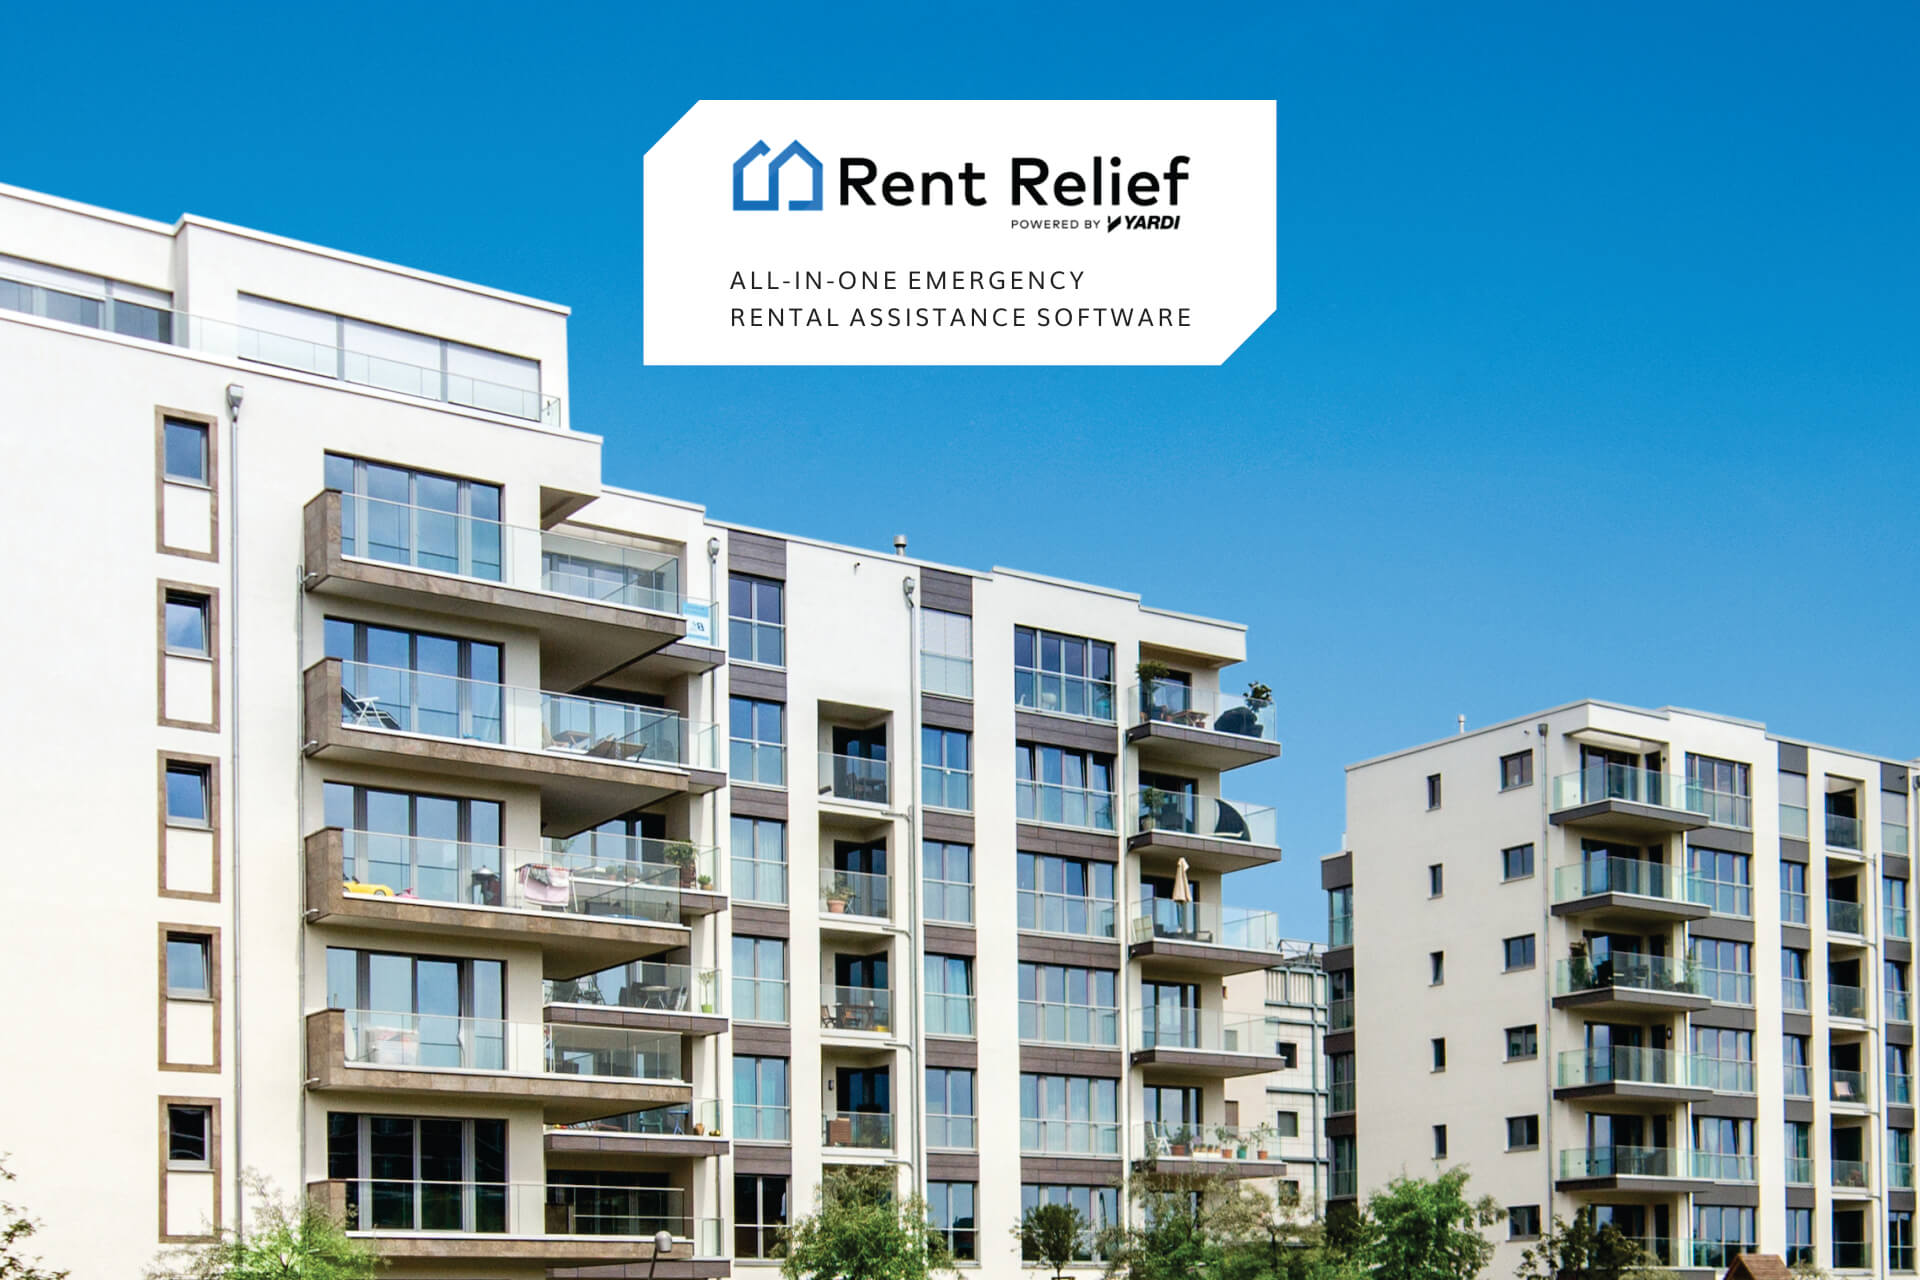 Yardi's Rental Assistance Software Offers Real Solutions for Governments & Renters